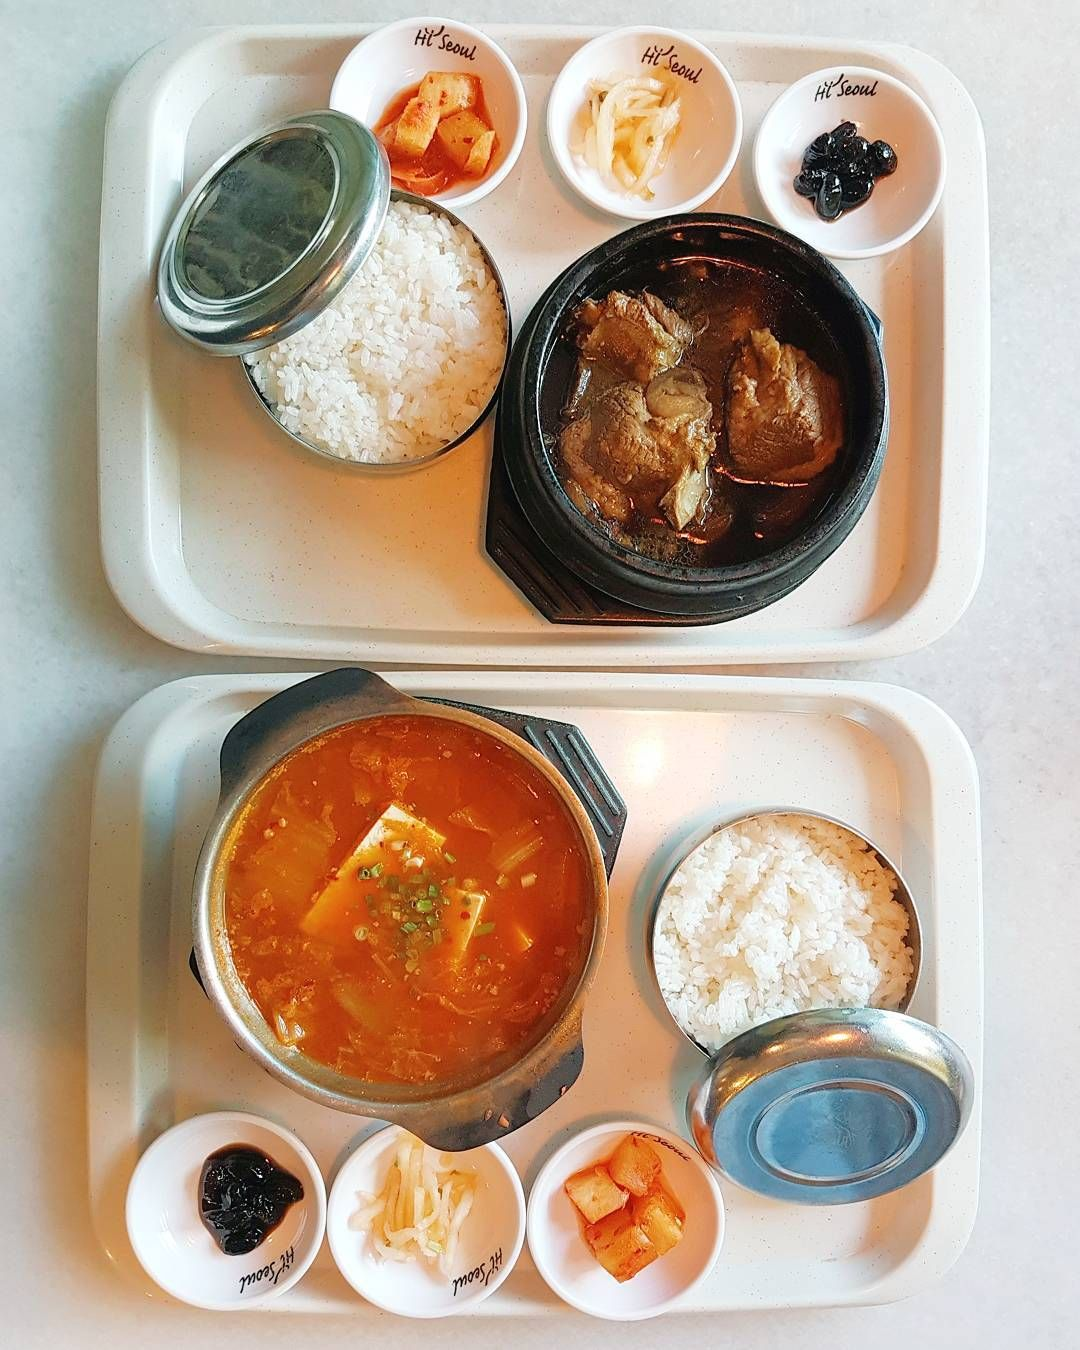 Sunday Lunch With Korean Foods At Hi Seoul Set Start From Rm10 Not The Best But Affordable Korean Foods Non Halal Food Eat Korean Food